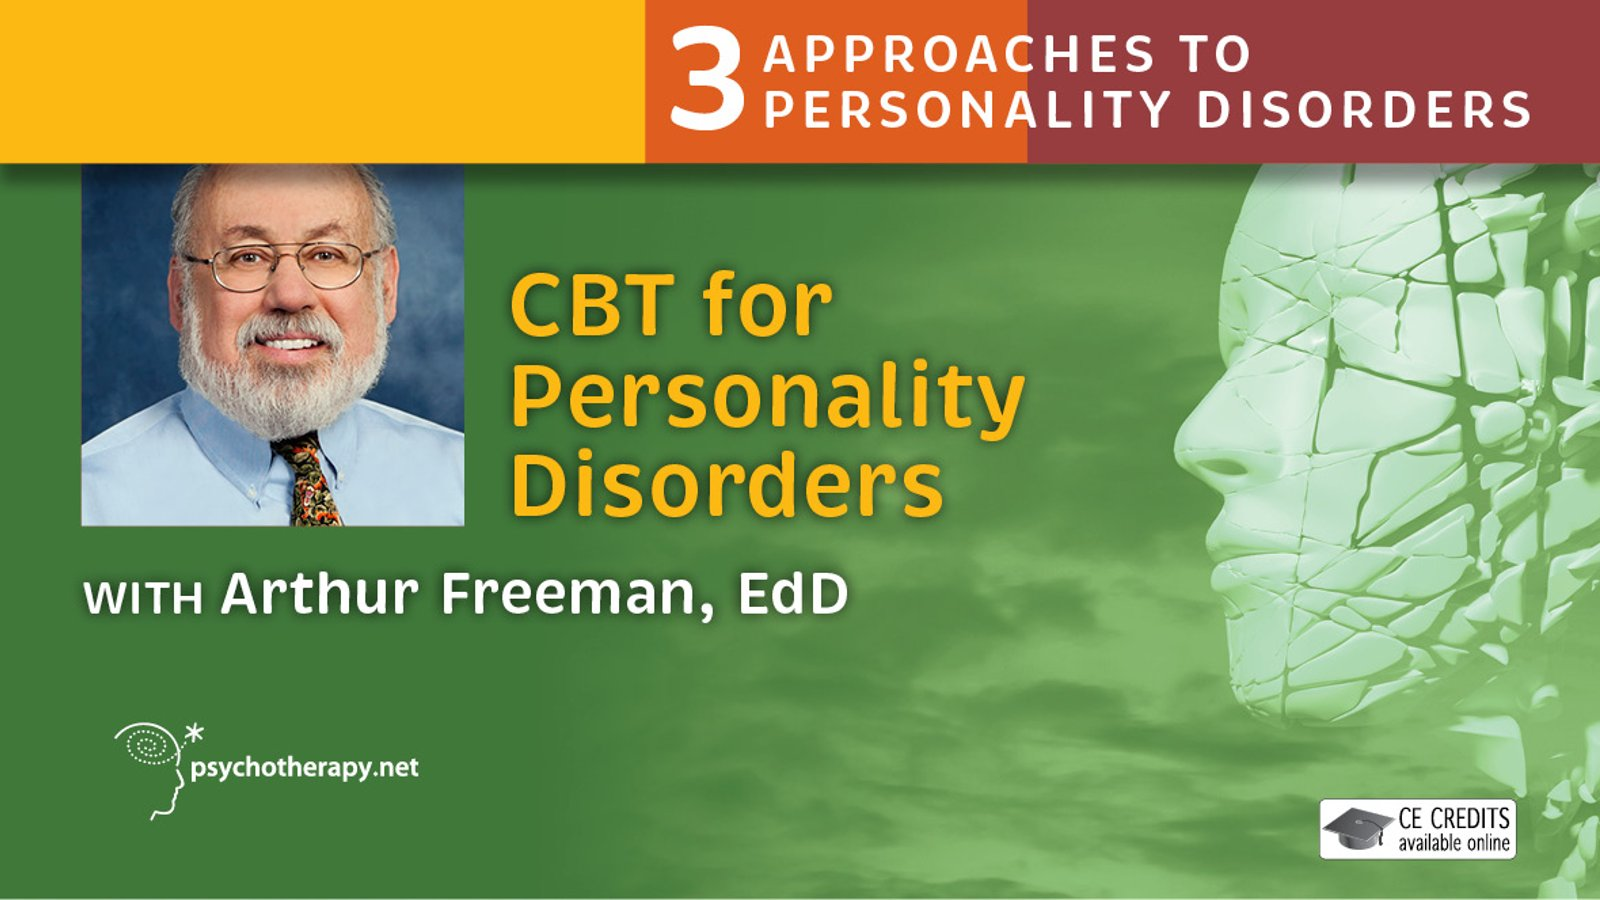 CBT for Personality Disorders - With Arthur Freeman